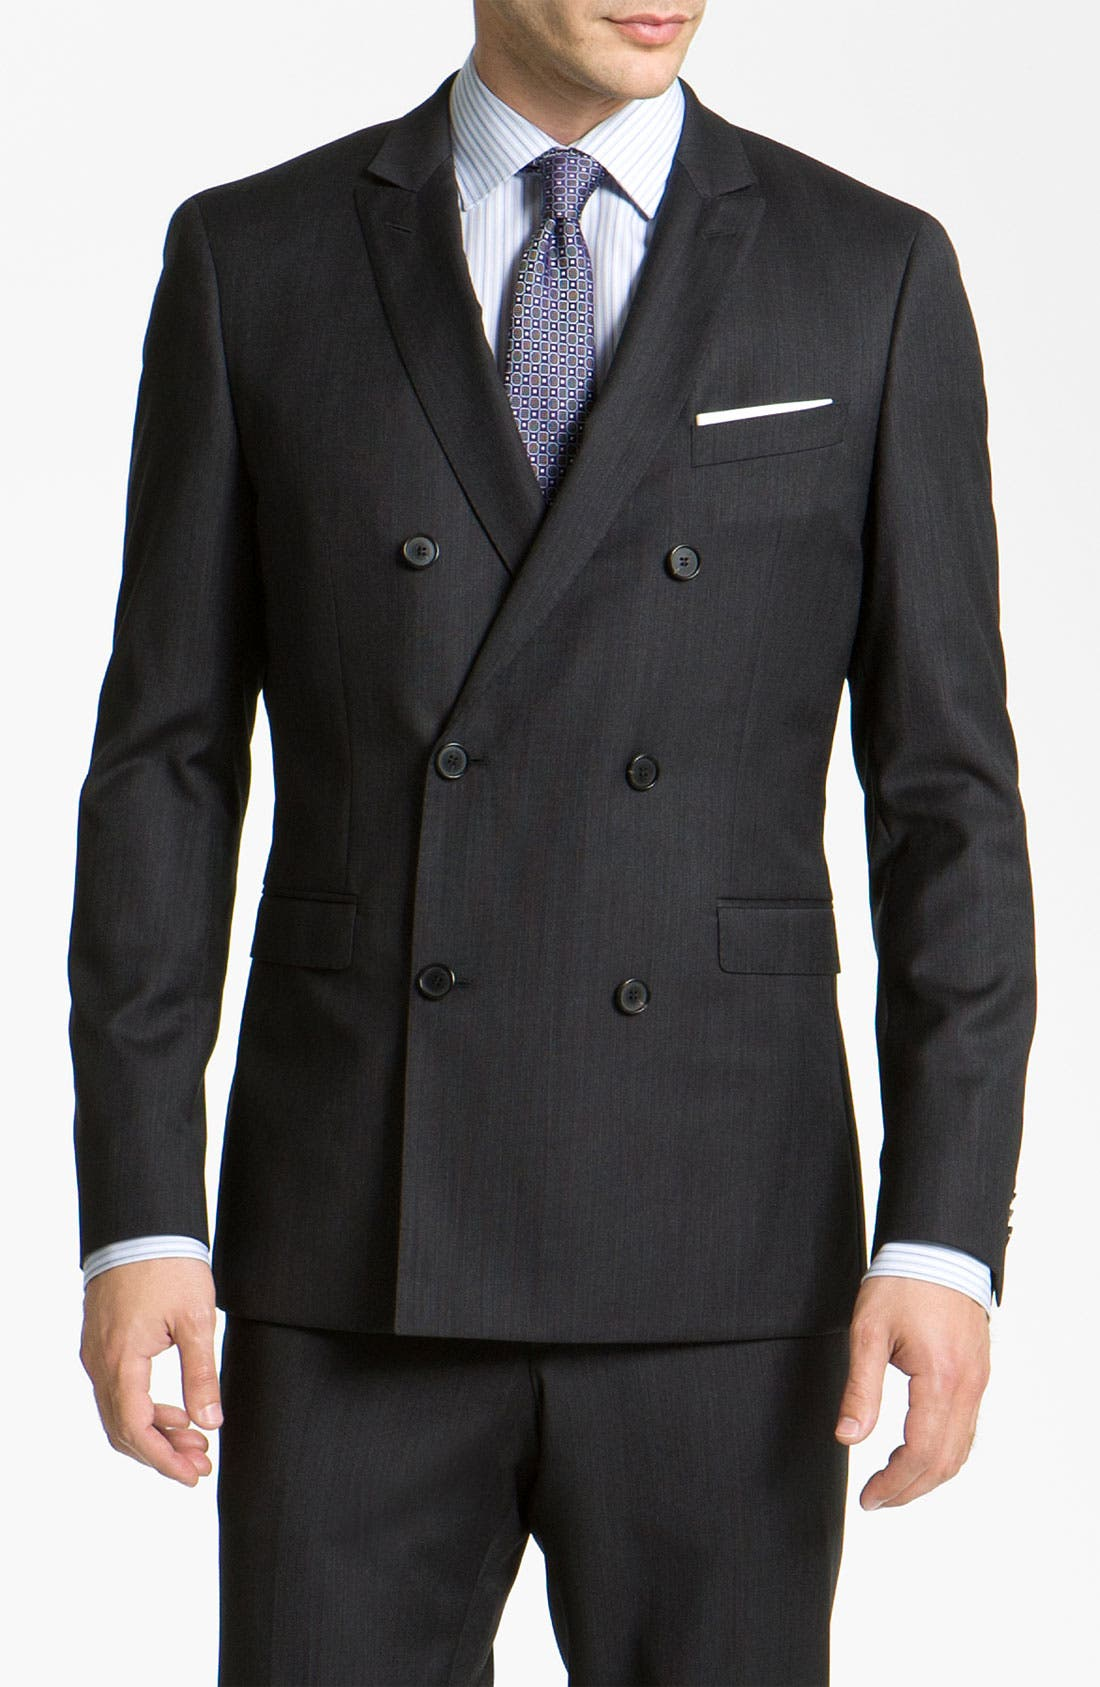 Main Image - BOSS Black 'Rusty/Win' Double Breasted Extra Trim Fit Suit